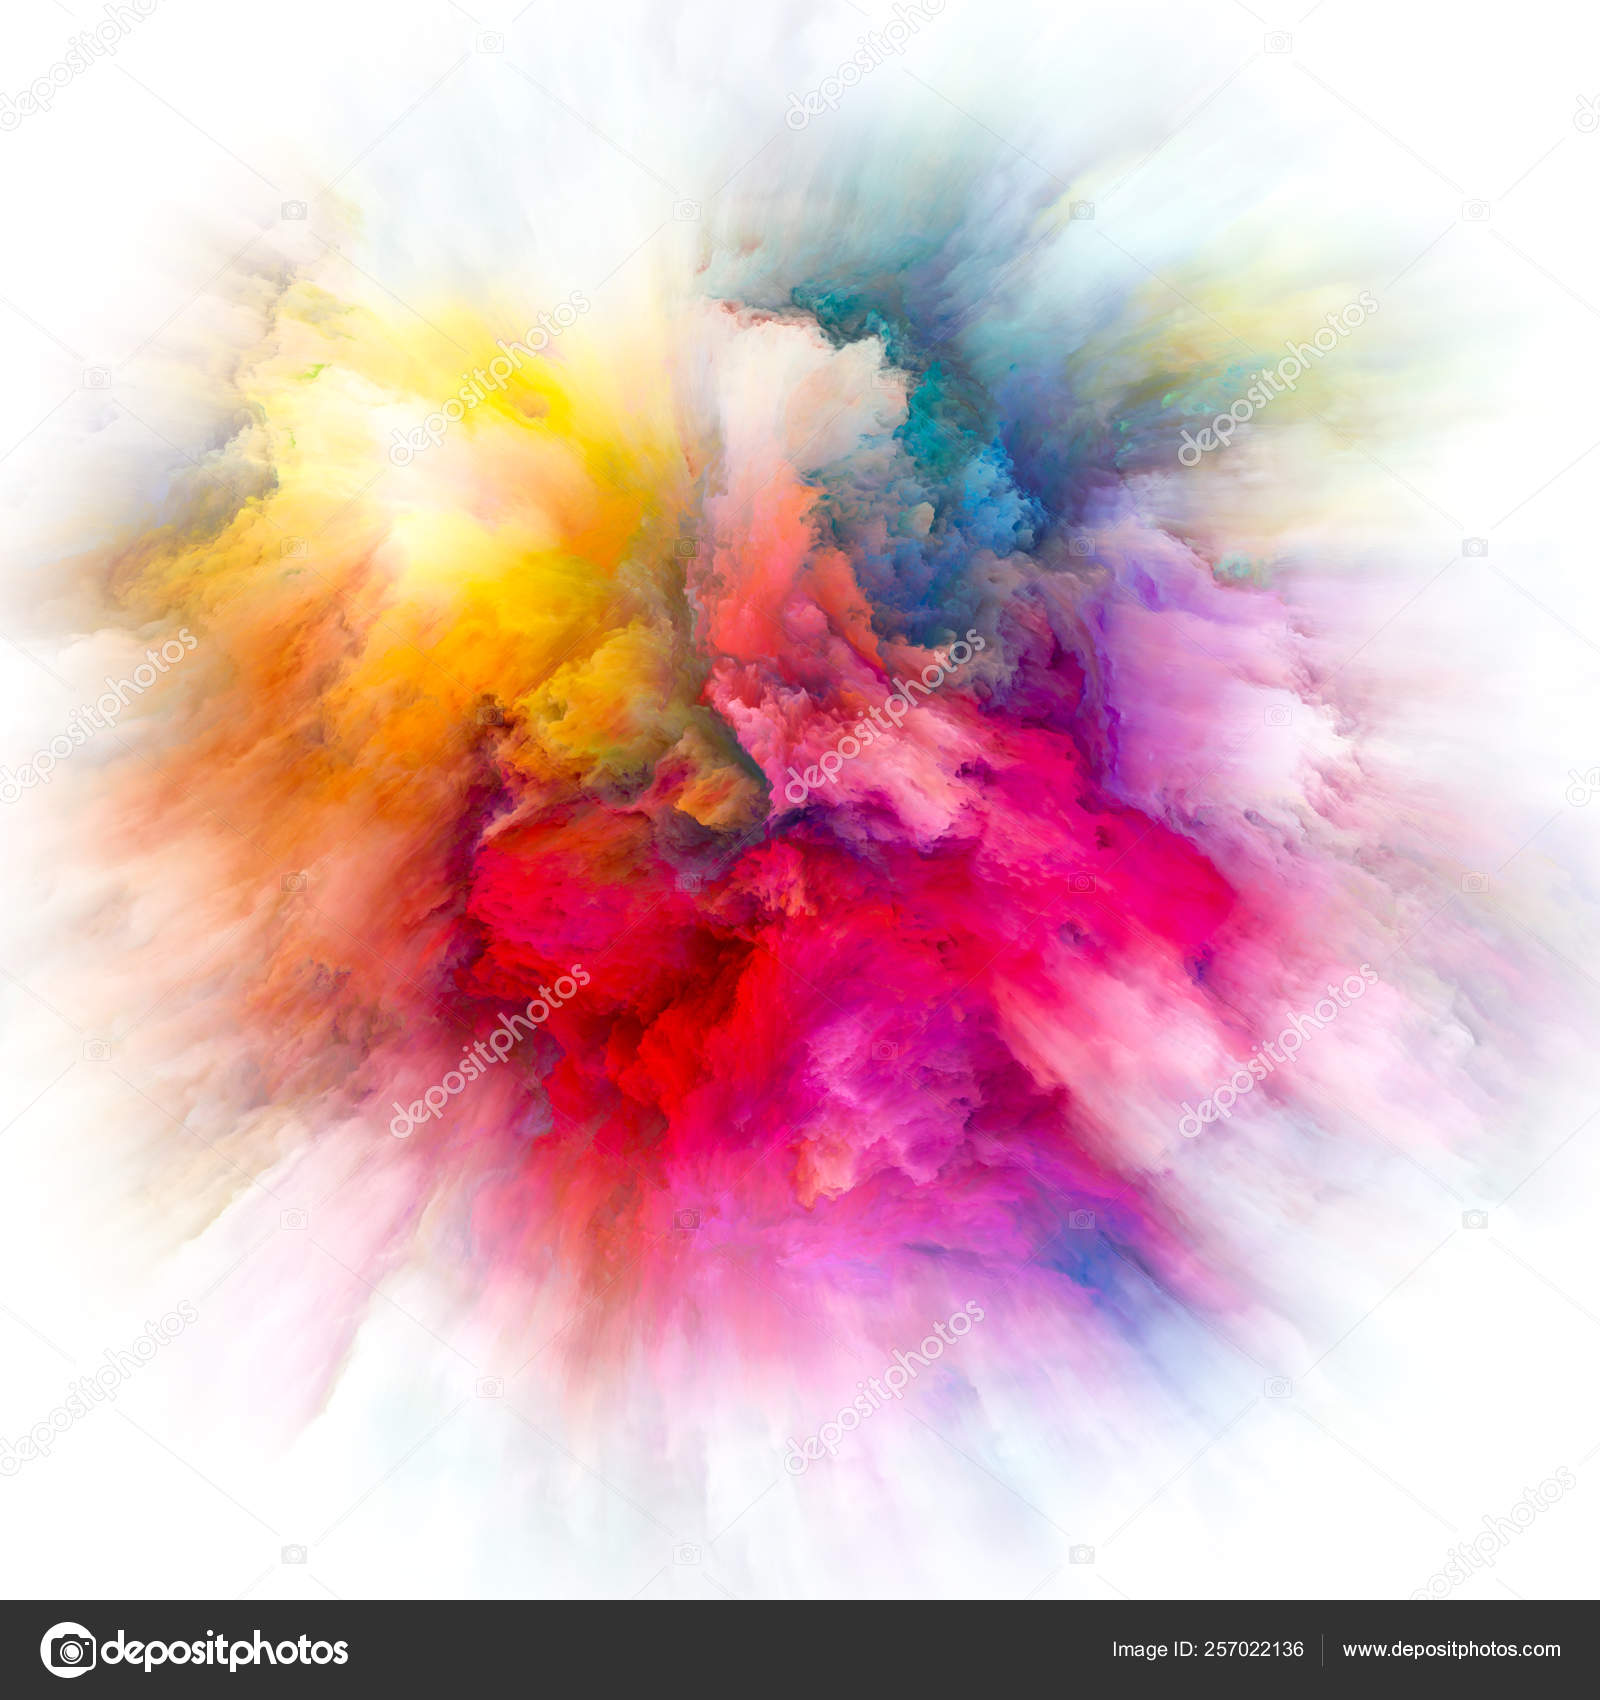 Layers of Color Splash Explosion — Stock Photo © agsandrew #257022136